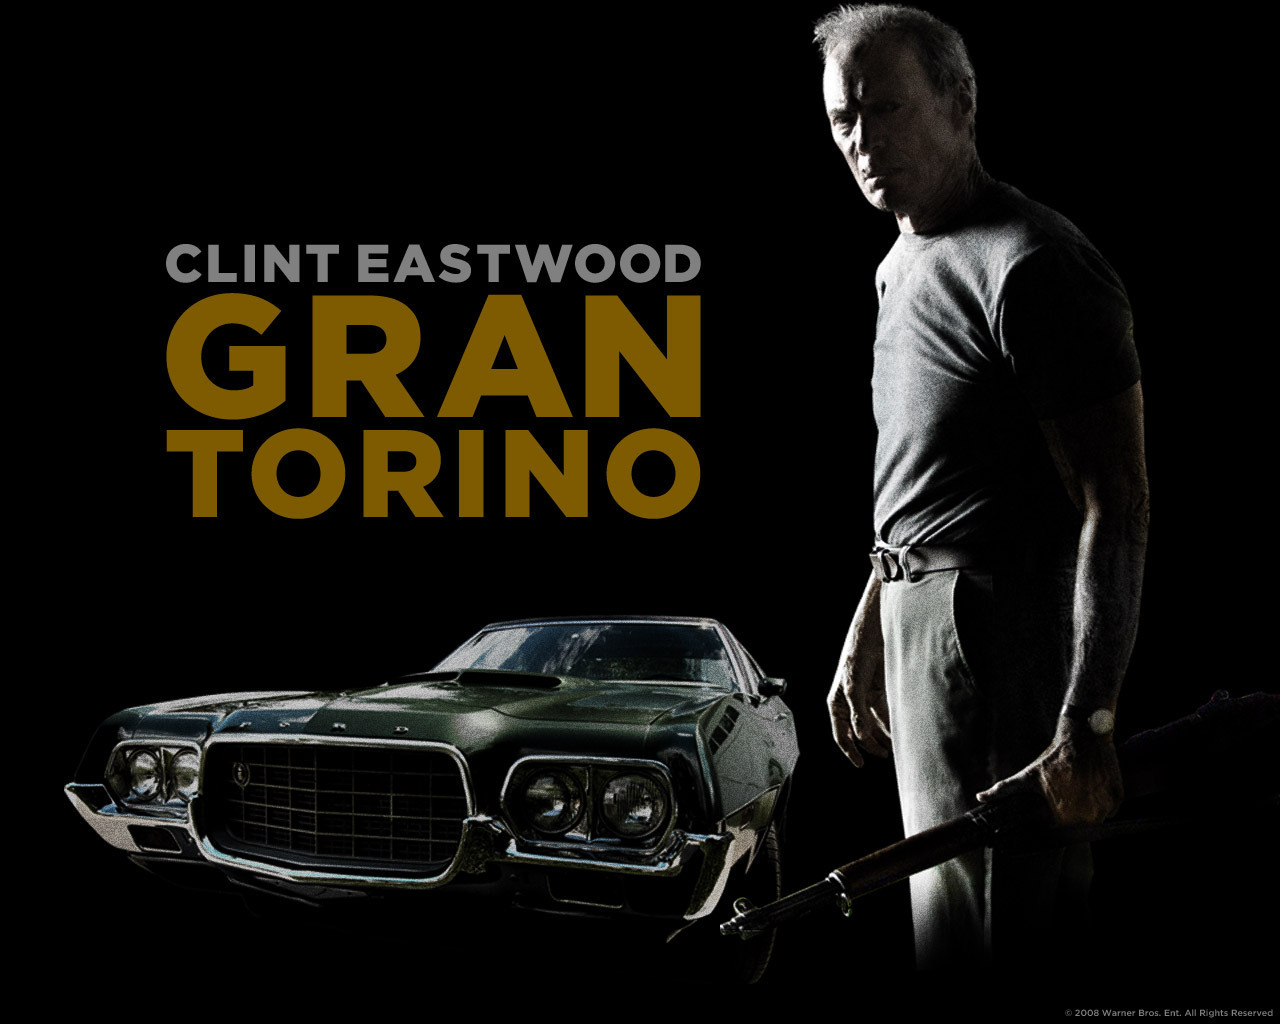 A review of the movie gran torino directed by clint eastwood